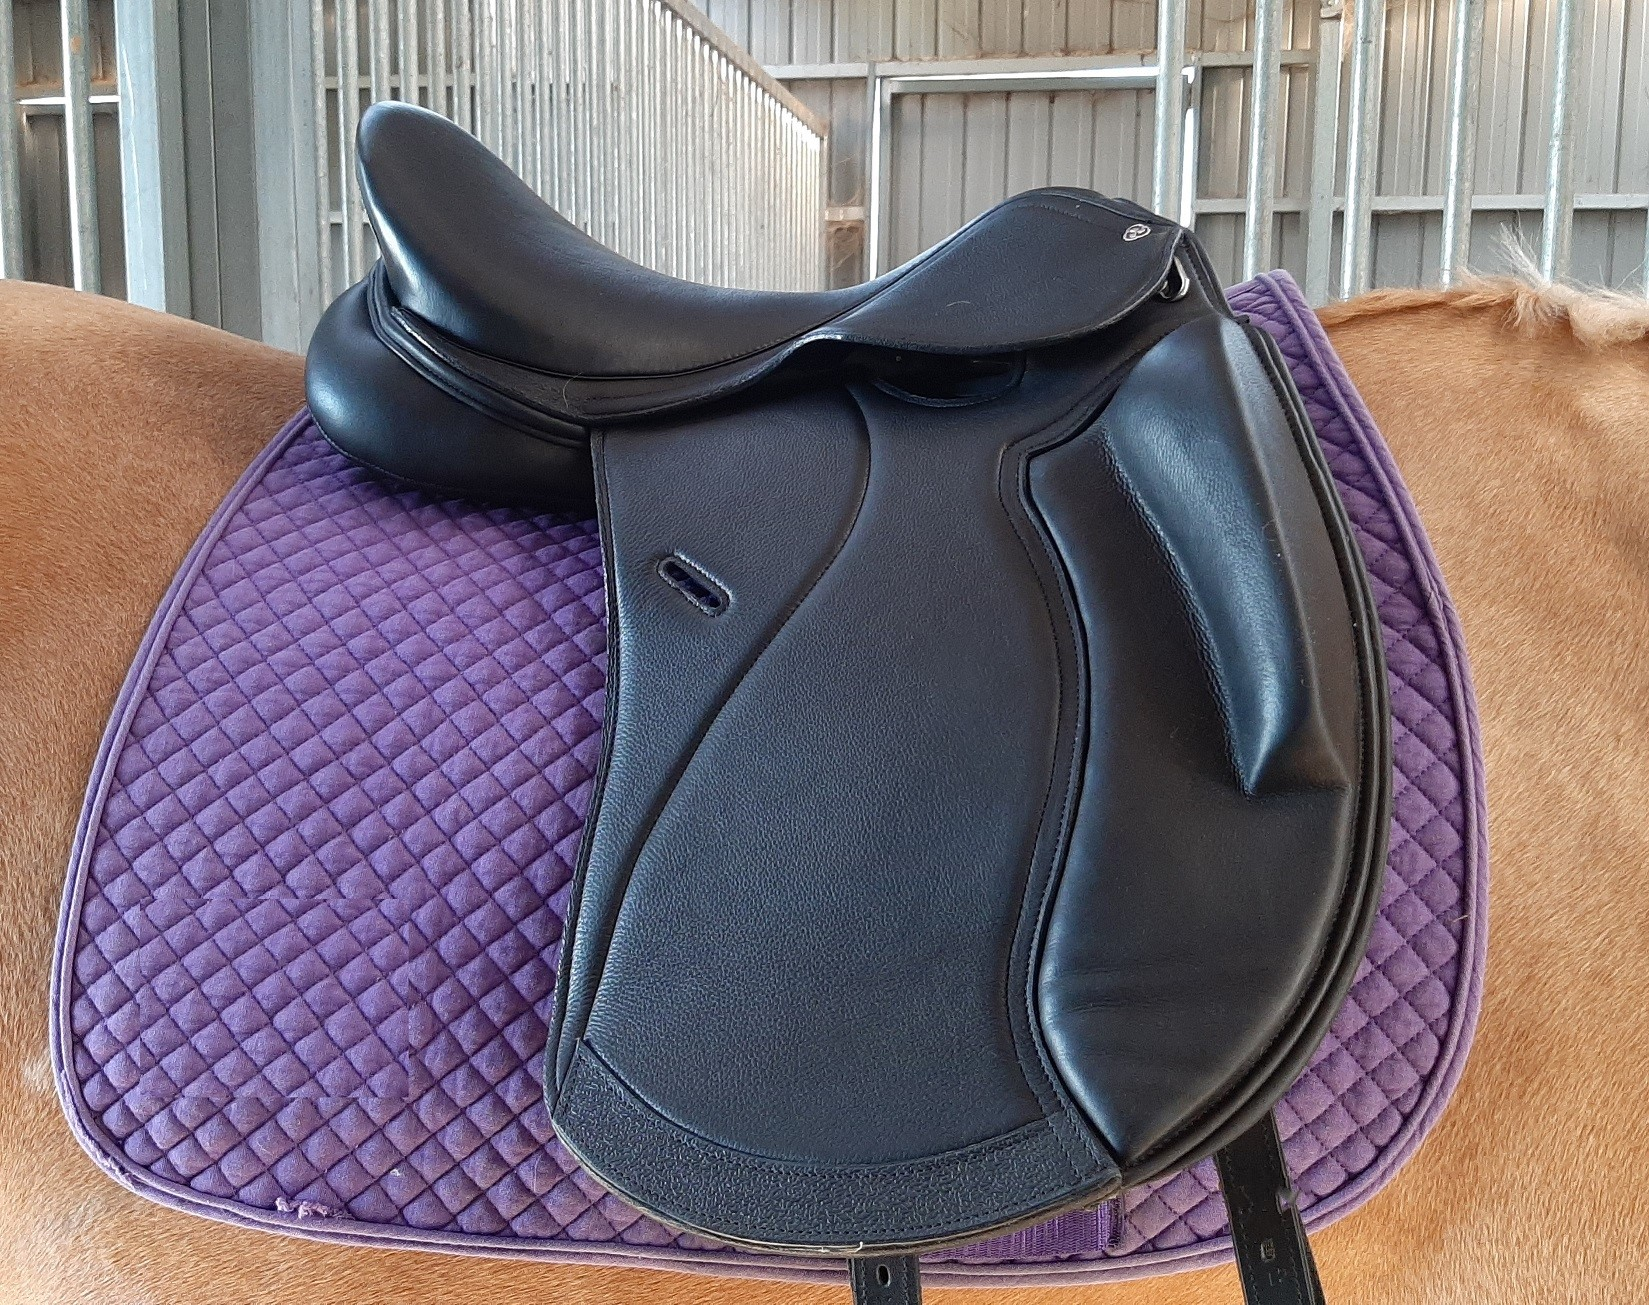 MONOFLAP SADDLES AT AN INTRODUCTORY PRICE FOR A LIMITED TIME ONLY!